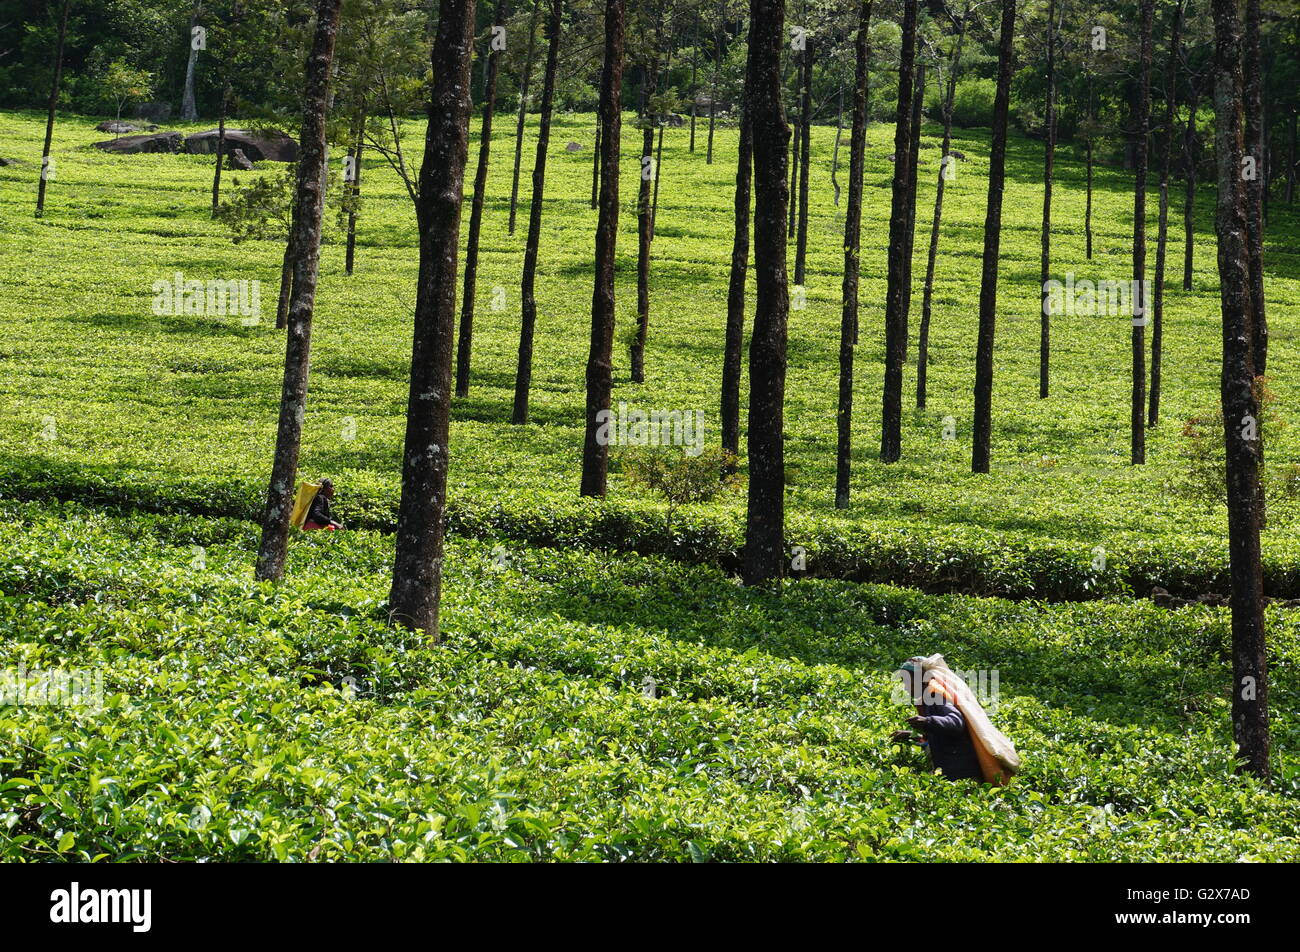 A woman picks leaves in a tea plantation in central Sri Lanka. - Stock Image